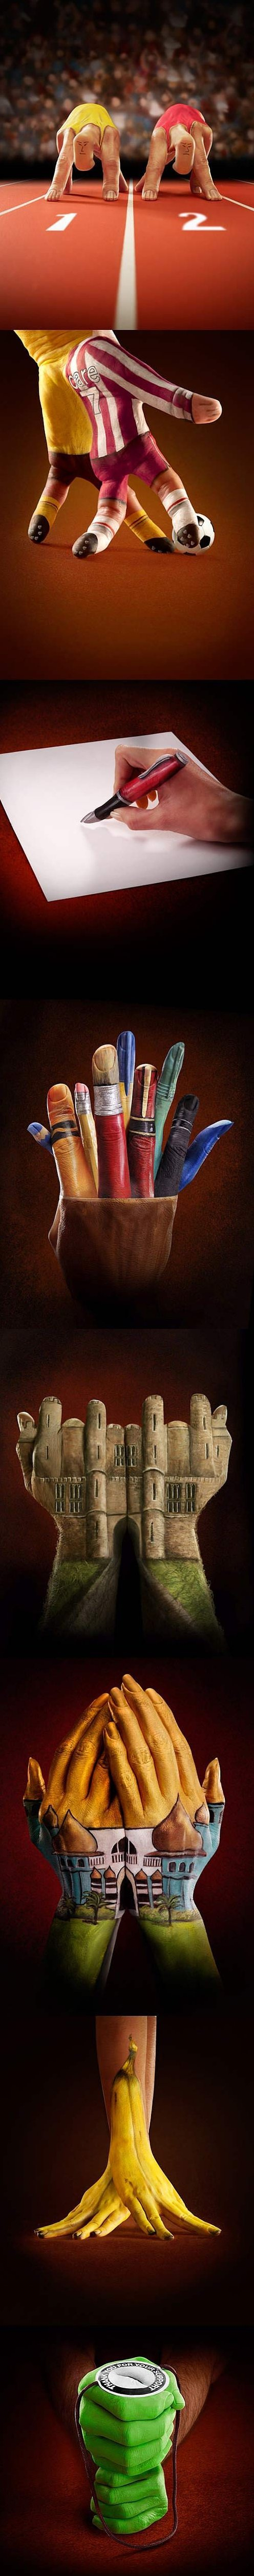 Awesome Hand Paintings by Ray Massey